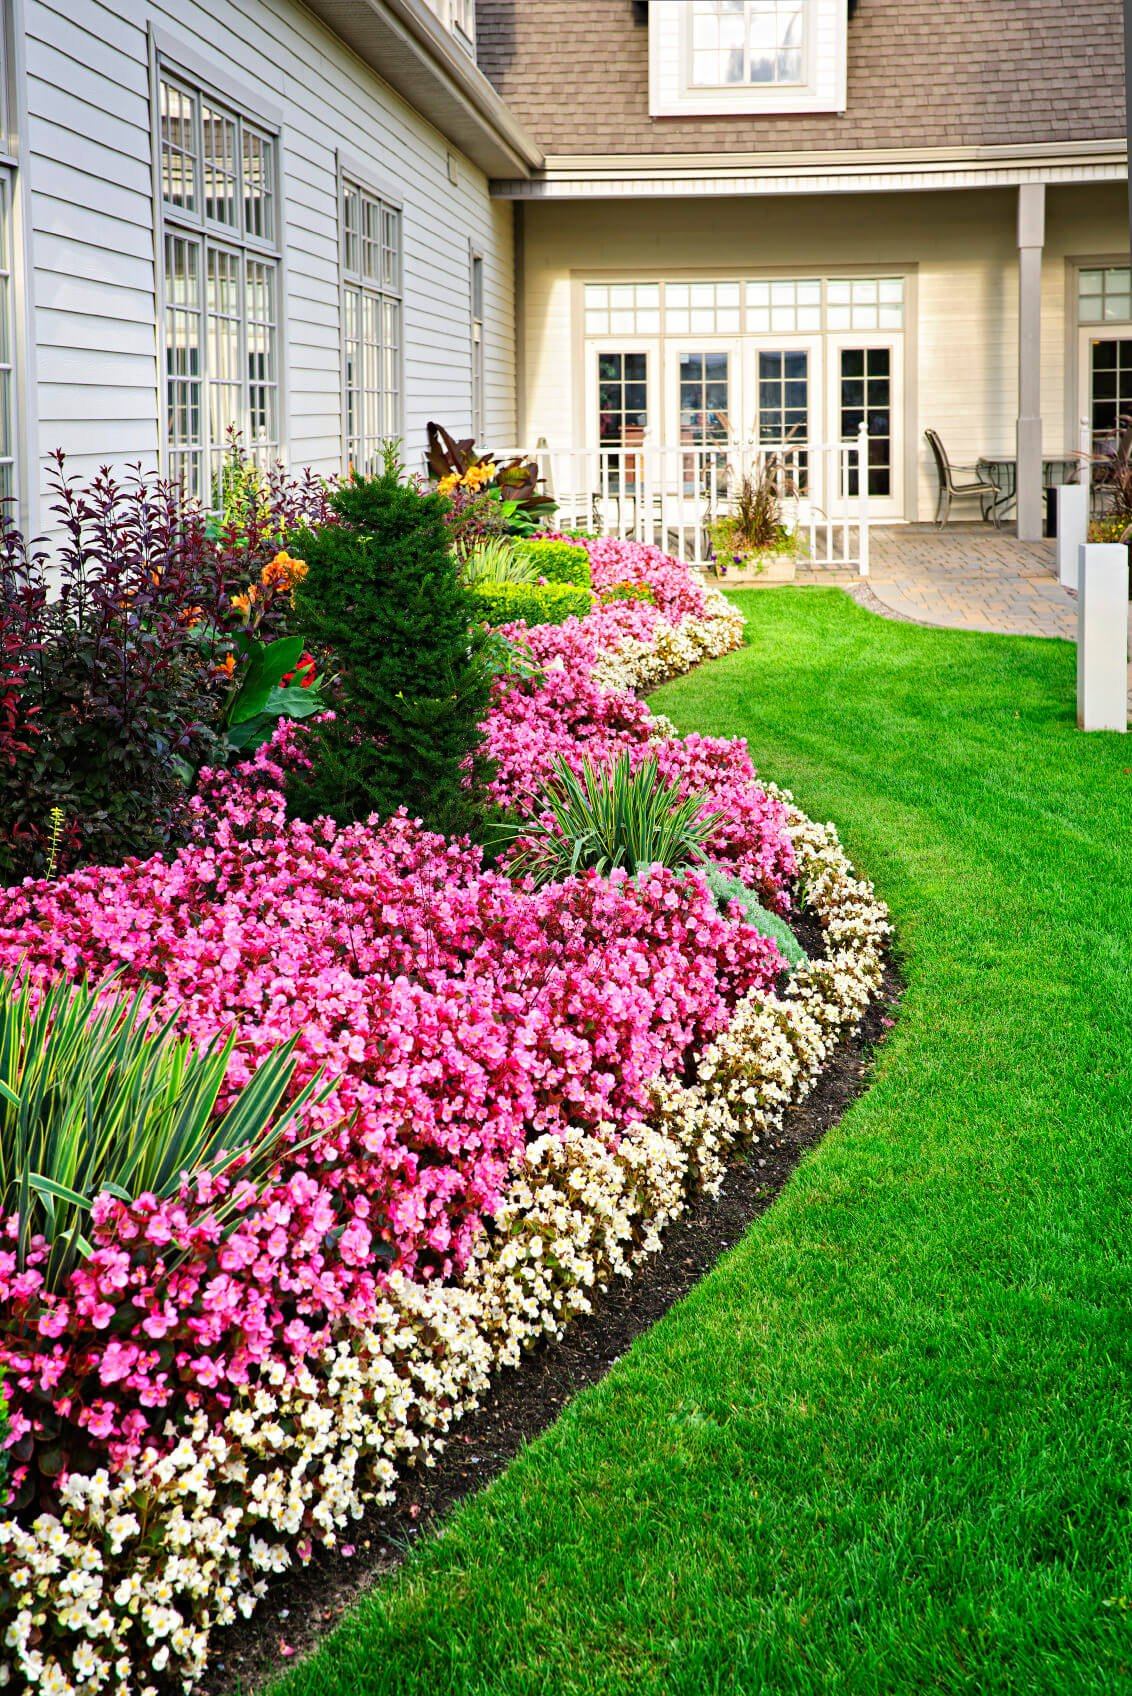 A flowerbed of colorful flowers against a wall with crystal windows reflects the colorful and nature kissed aura.